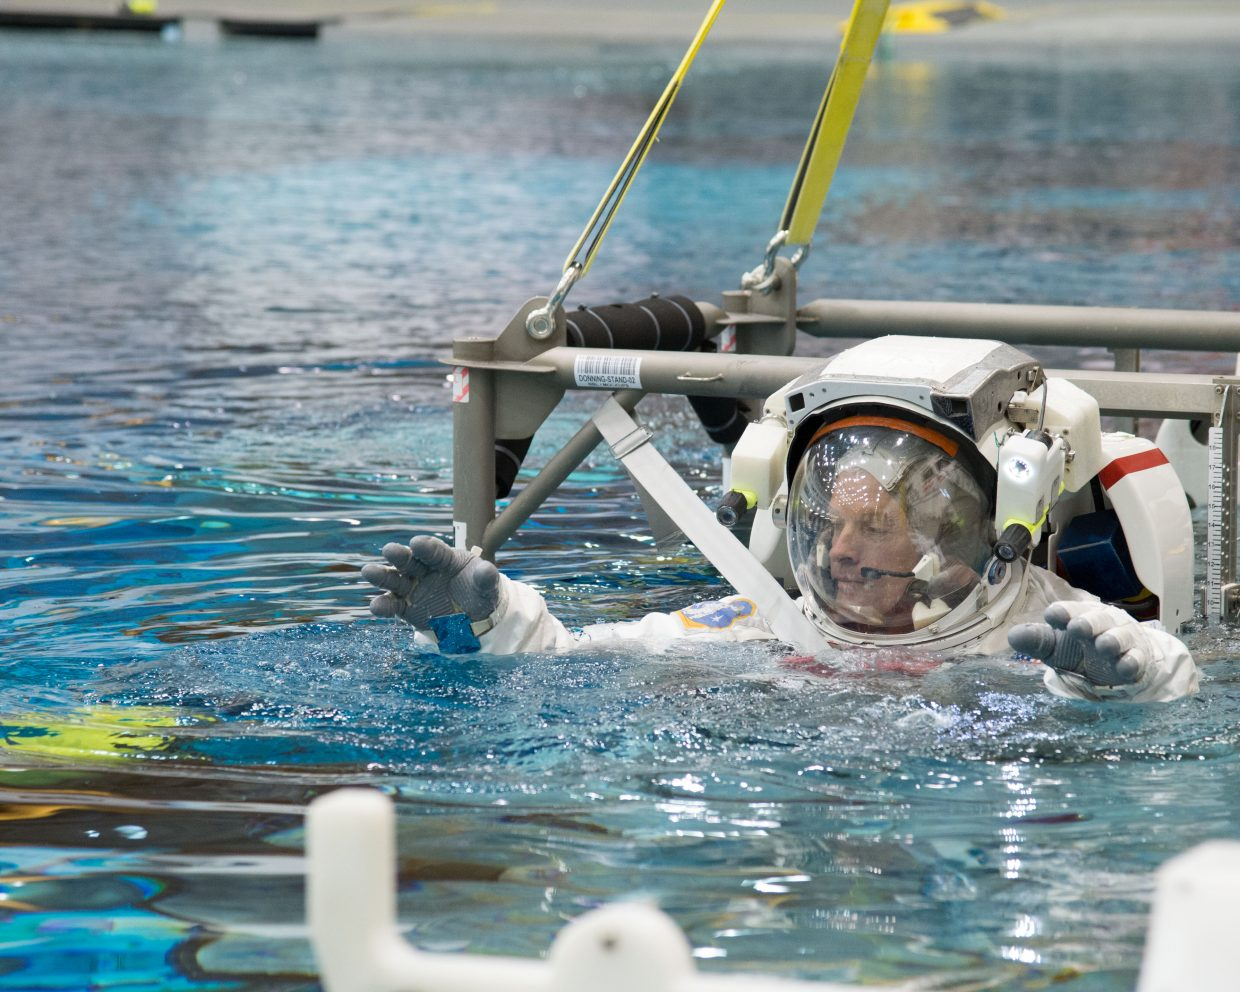 NASA astronaut Steve Swanson, Expedition 39 flight engineer and Expedition 40 commander, trains in waters of the Neutral Buoyancy Laboratory near NASA's Johnson Space Center. Swanson is expected to travel to the International Space Station in March.